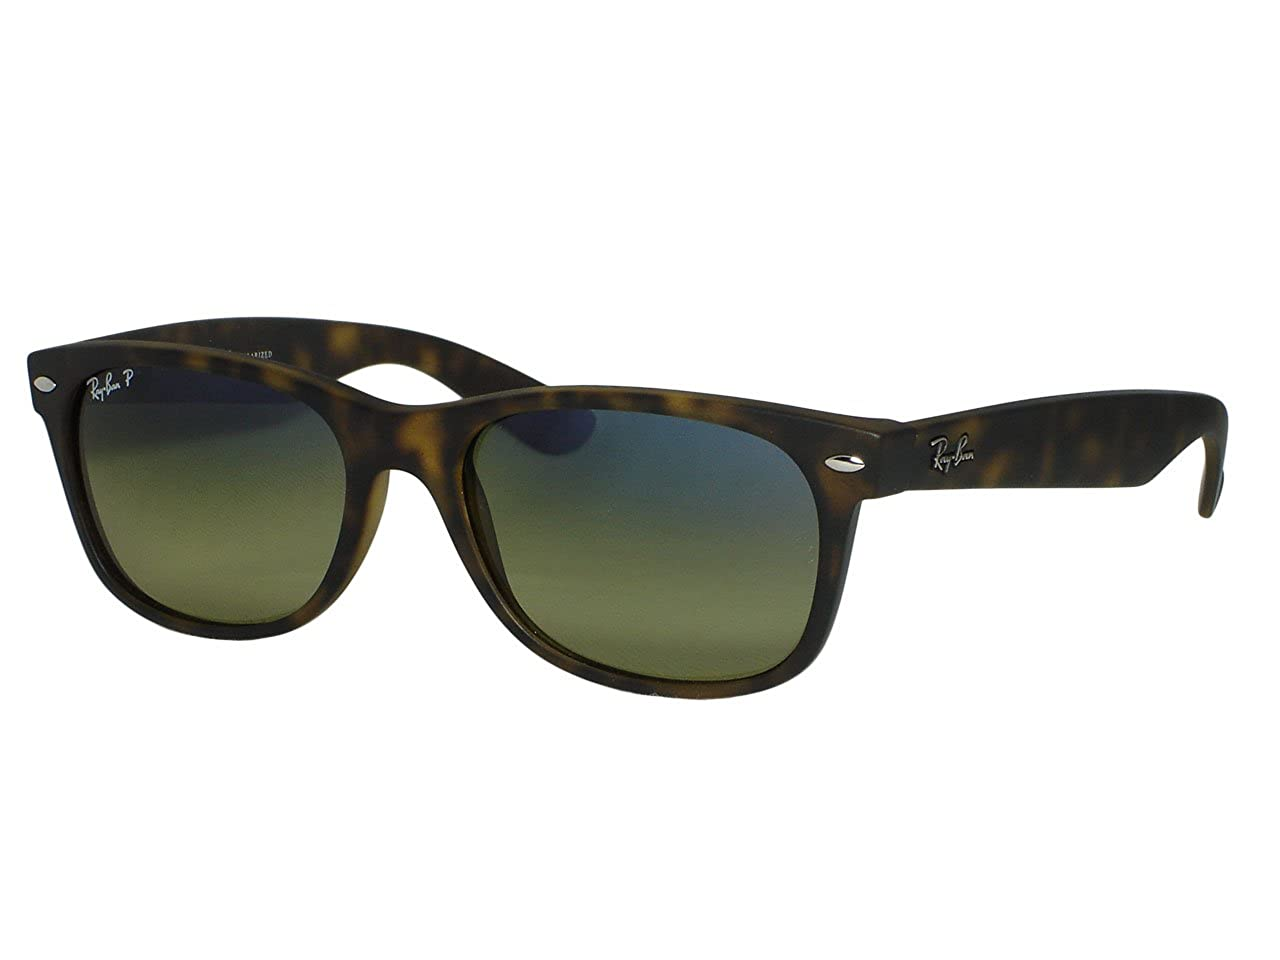 81afcefd7a7 Amazon.com  Ray Ban RB2132 New Wayfarer 894 76 Matte Havana Polarized  sunglasses 55mm  Clothing